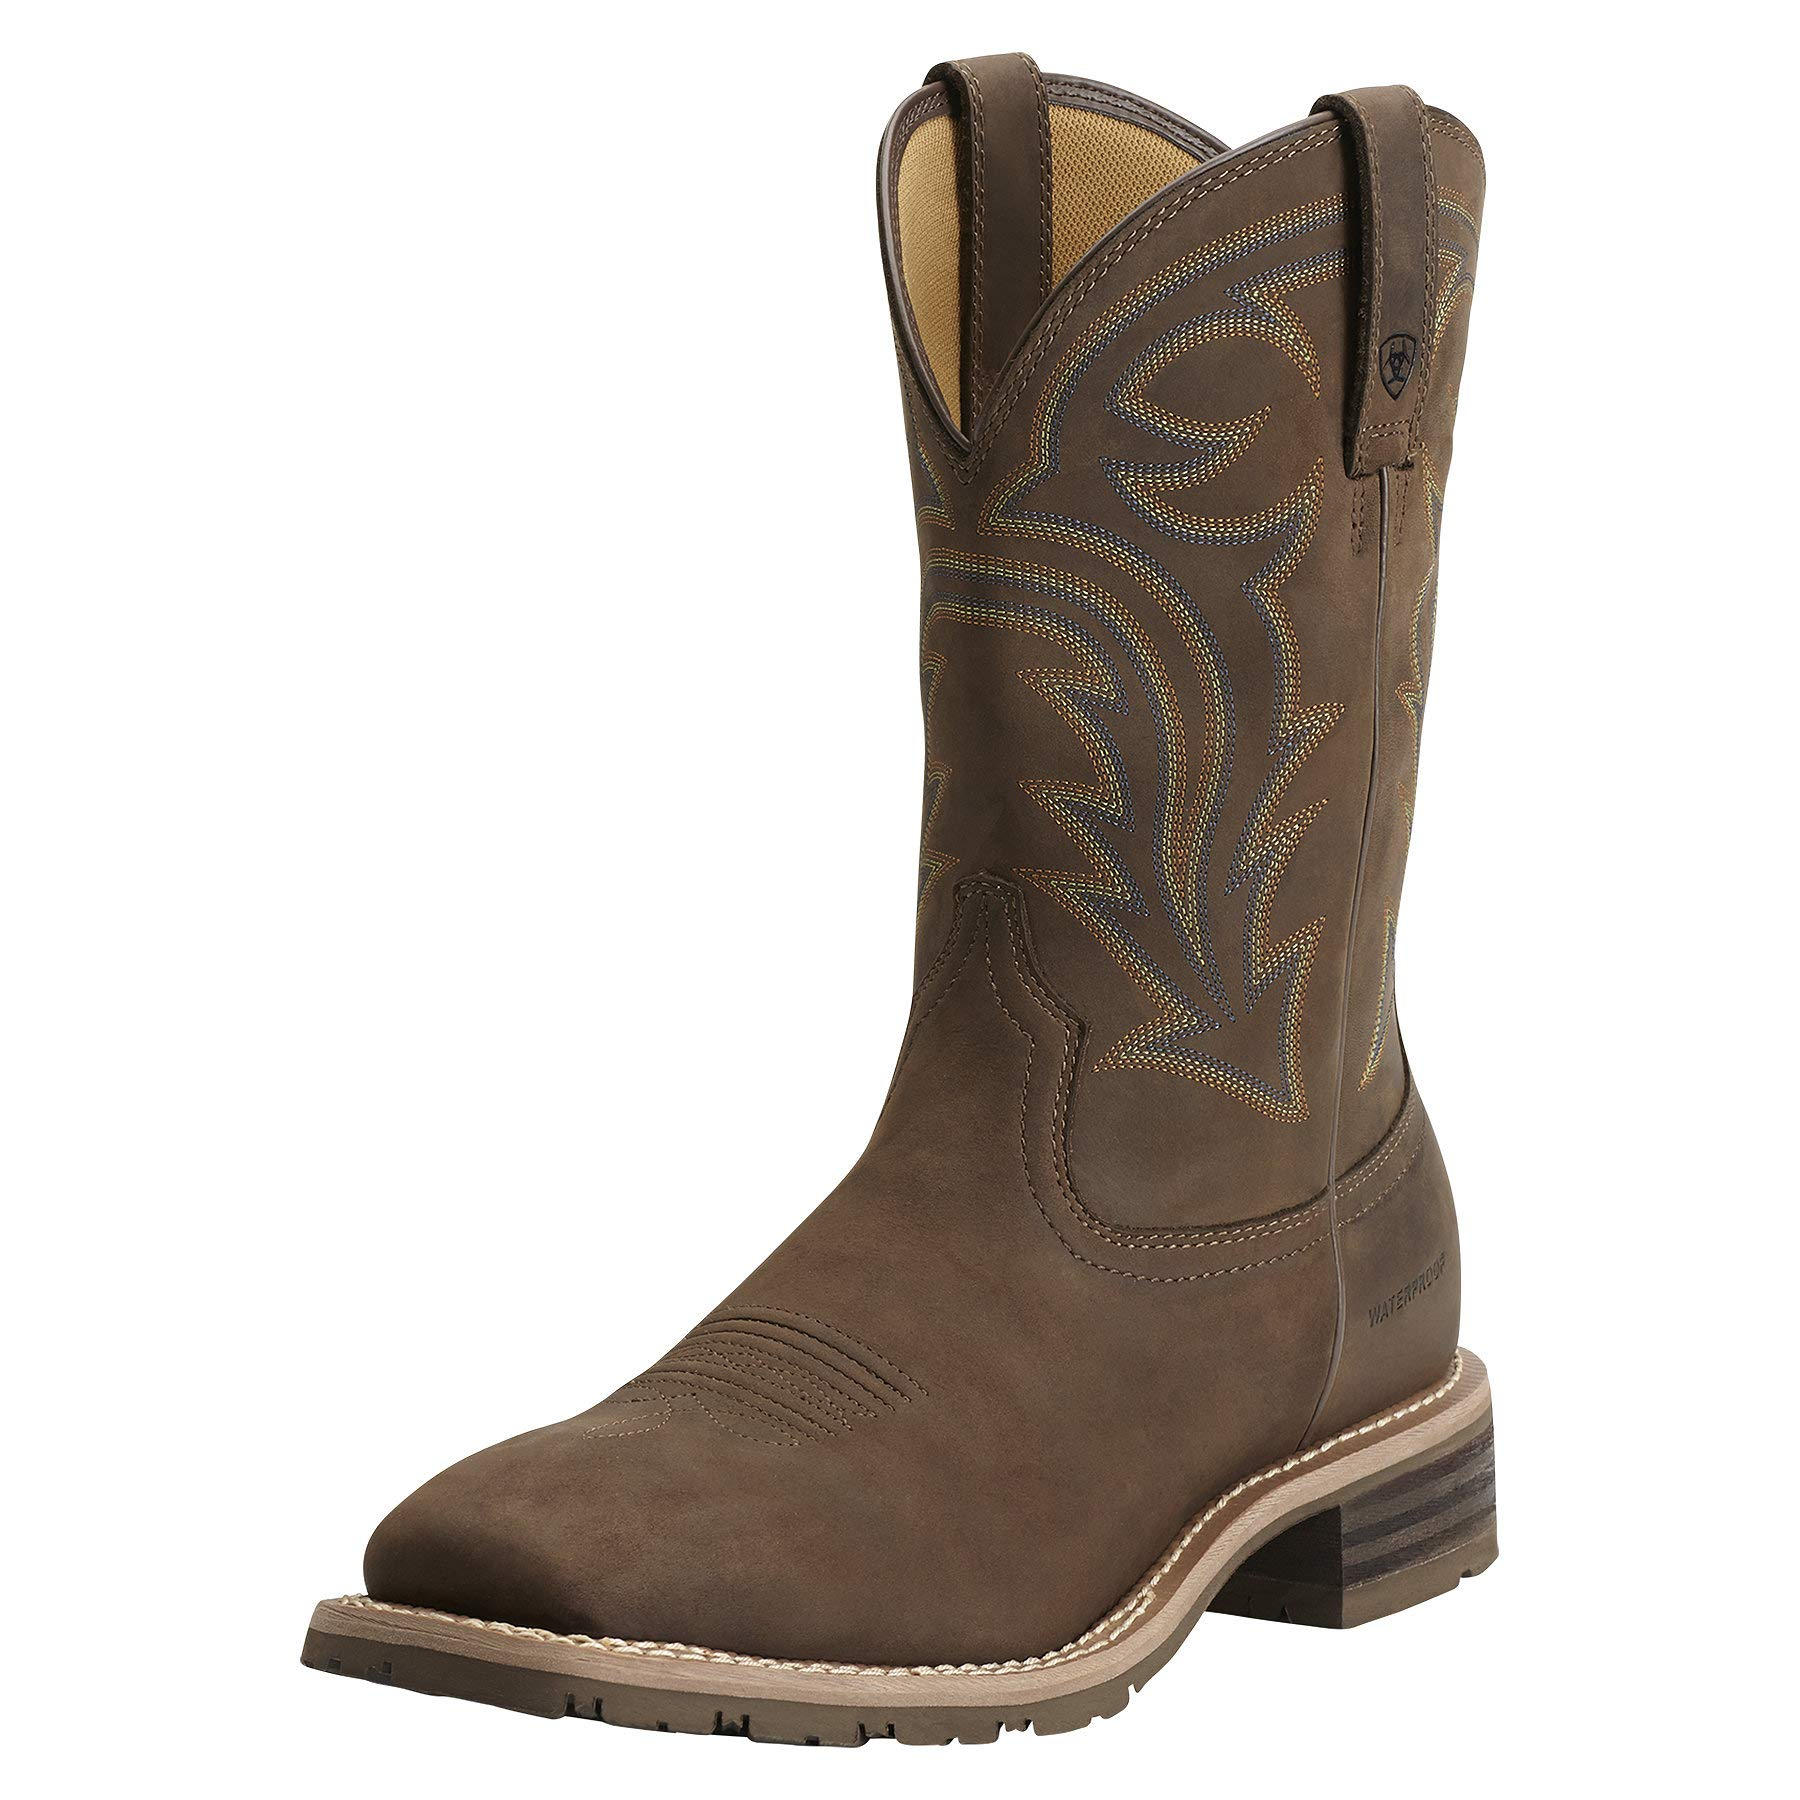 Ariat Men's Hybrid Rancher H2O Western Cowboy Boot, Oily Distressed Brown, 10.5 M US by ARIAT